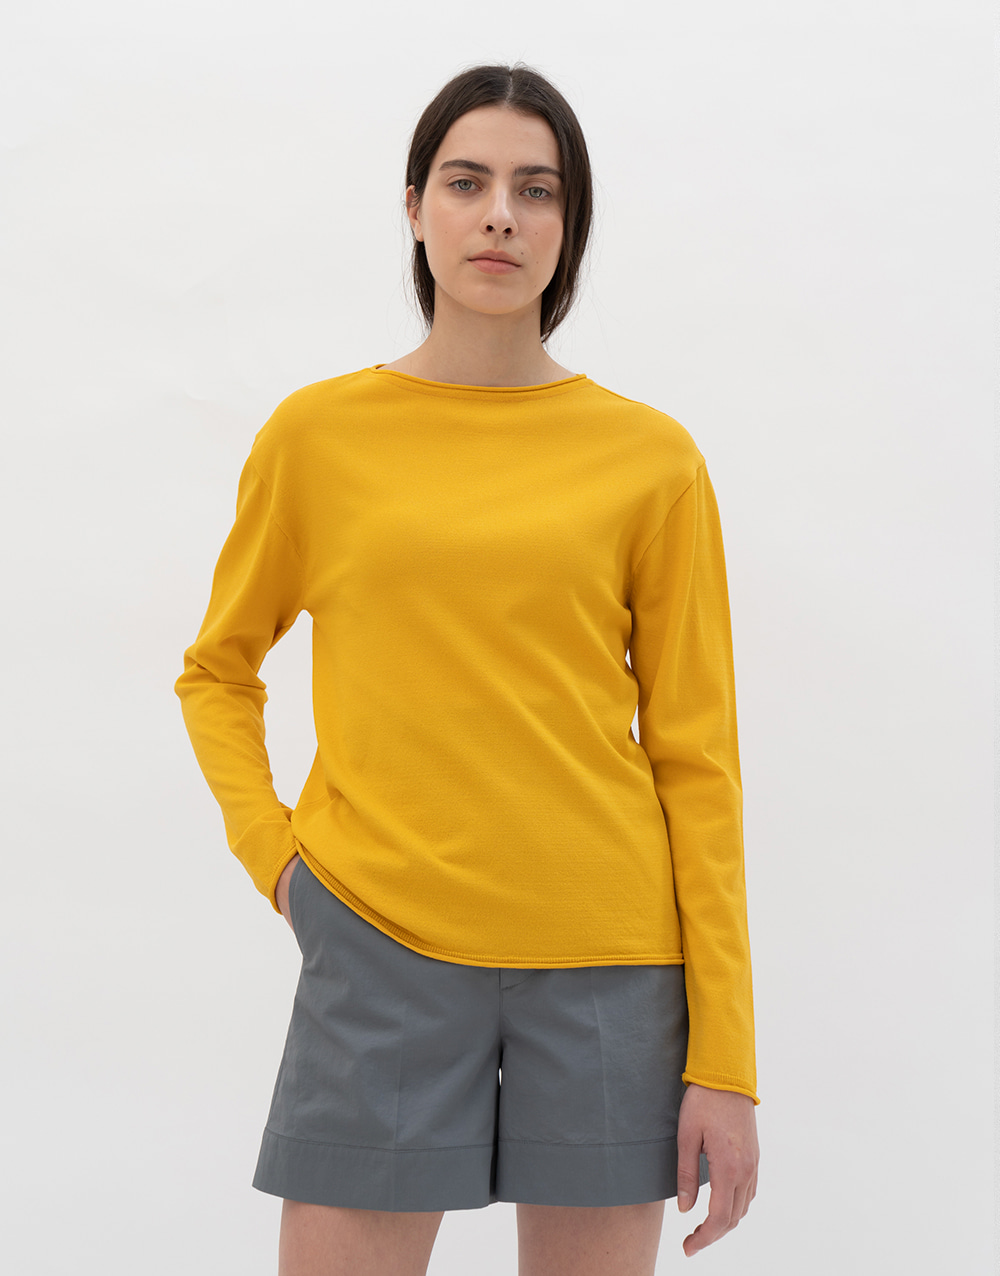 GBH APPAREL ADULT  Comfort Round Knit MUSTARD